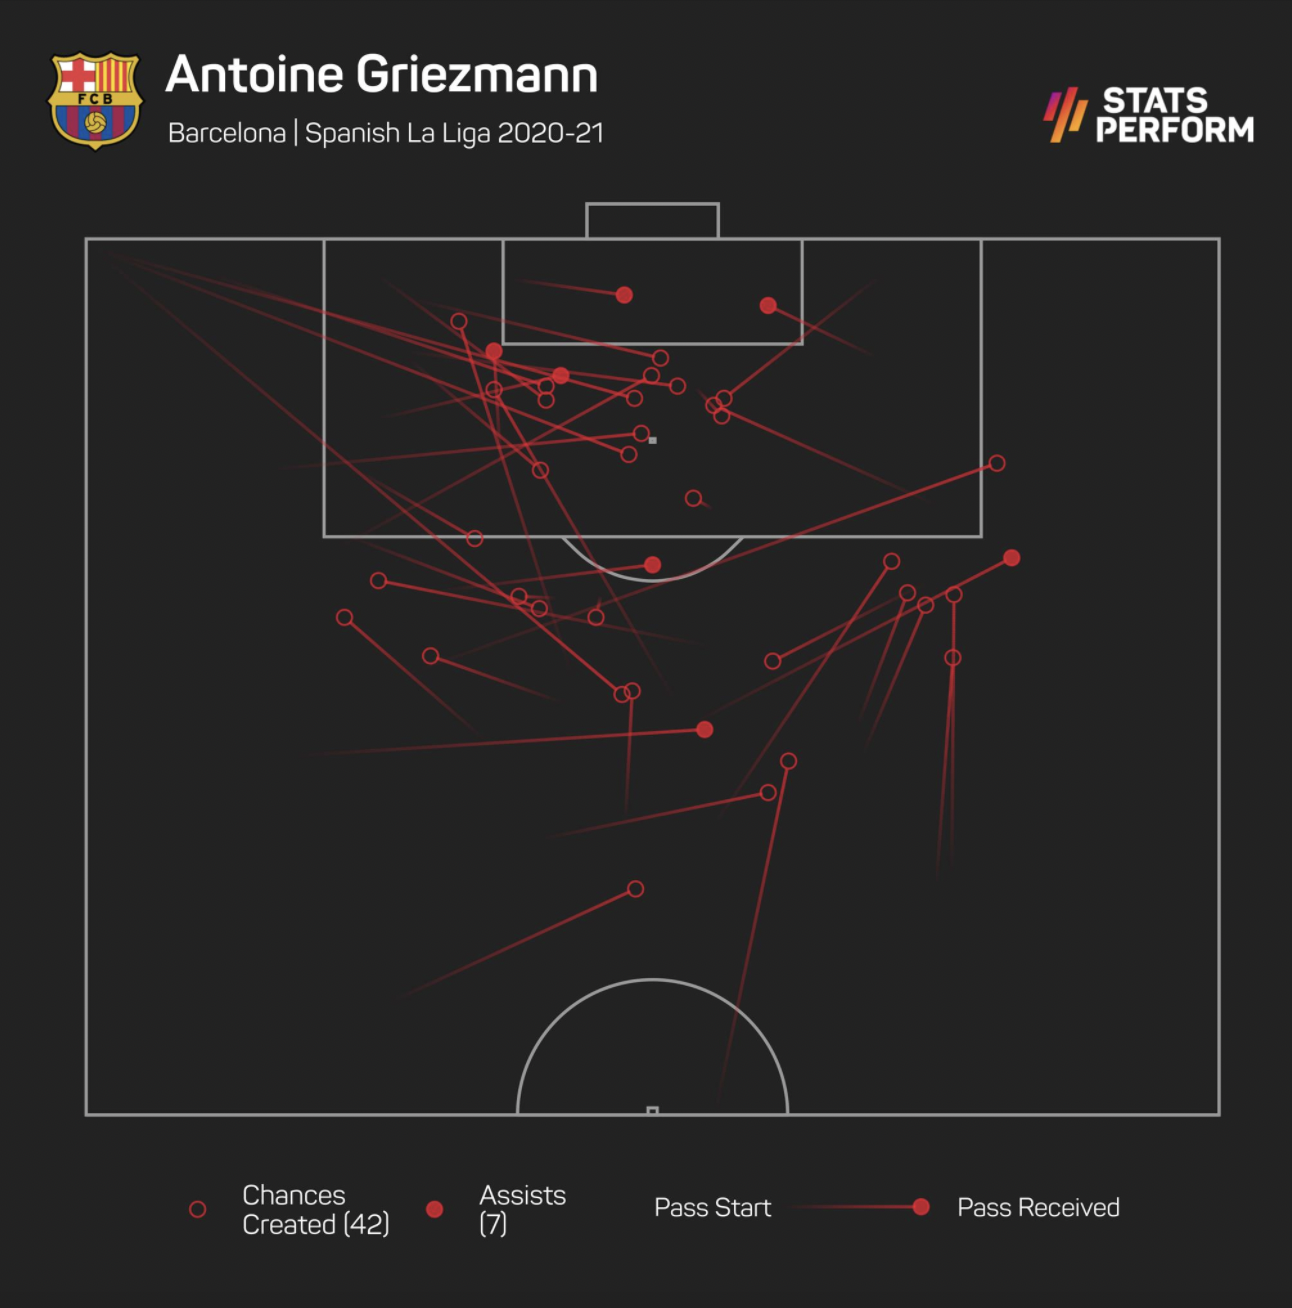 Antoine Griezmann provided seven assists in LaLiga